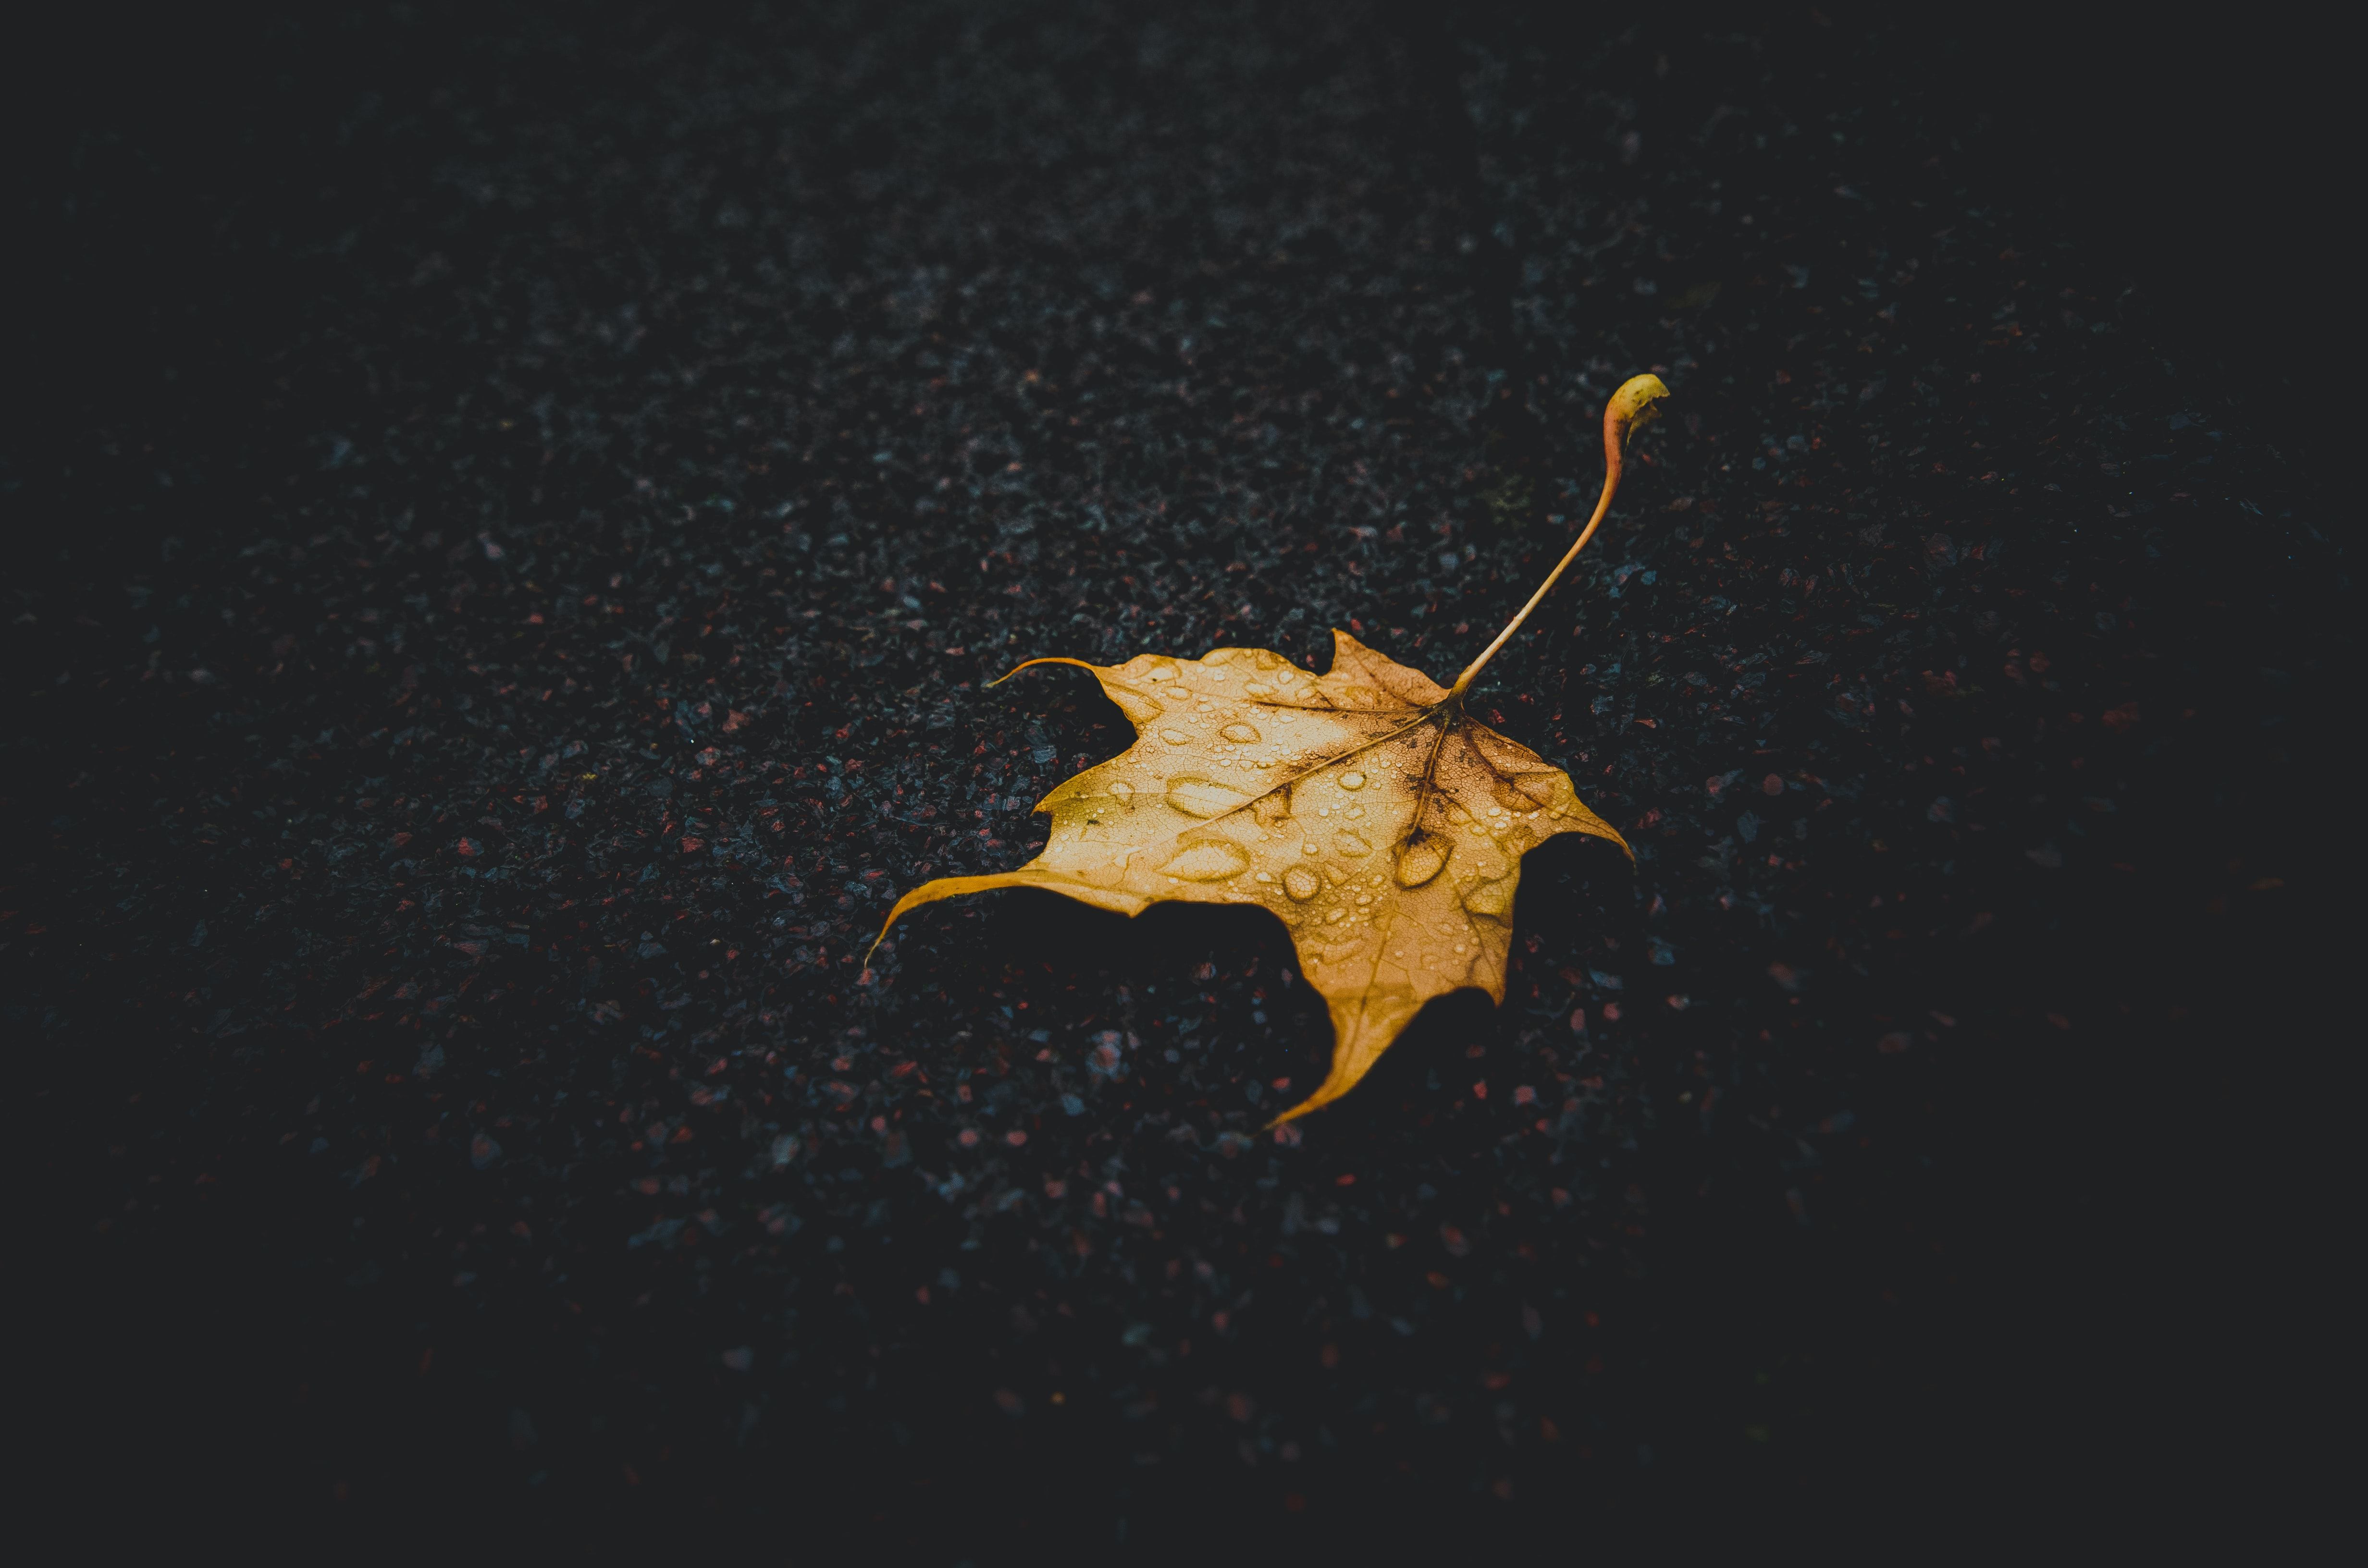 Single autumn leaf with rain droplets on wet pavement